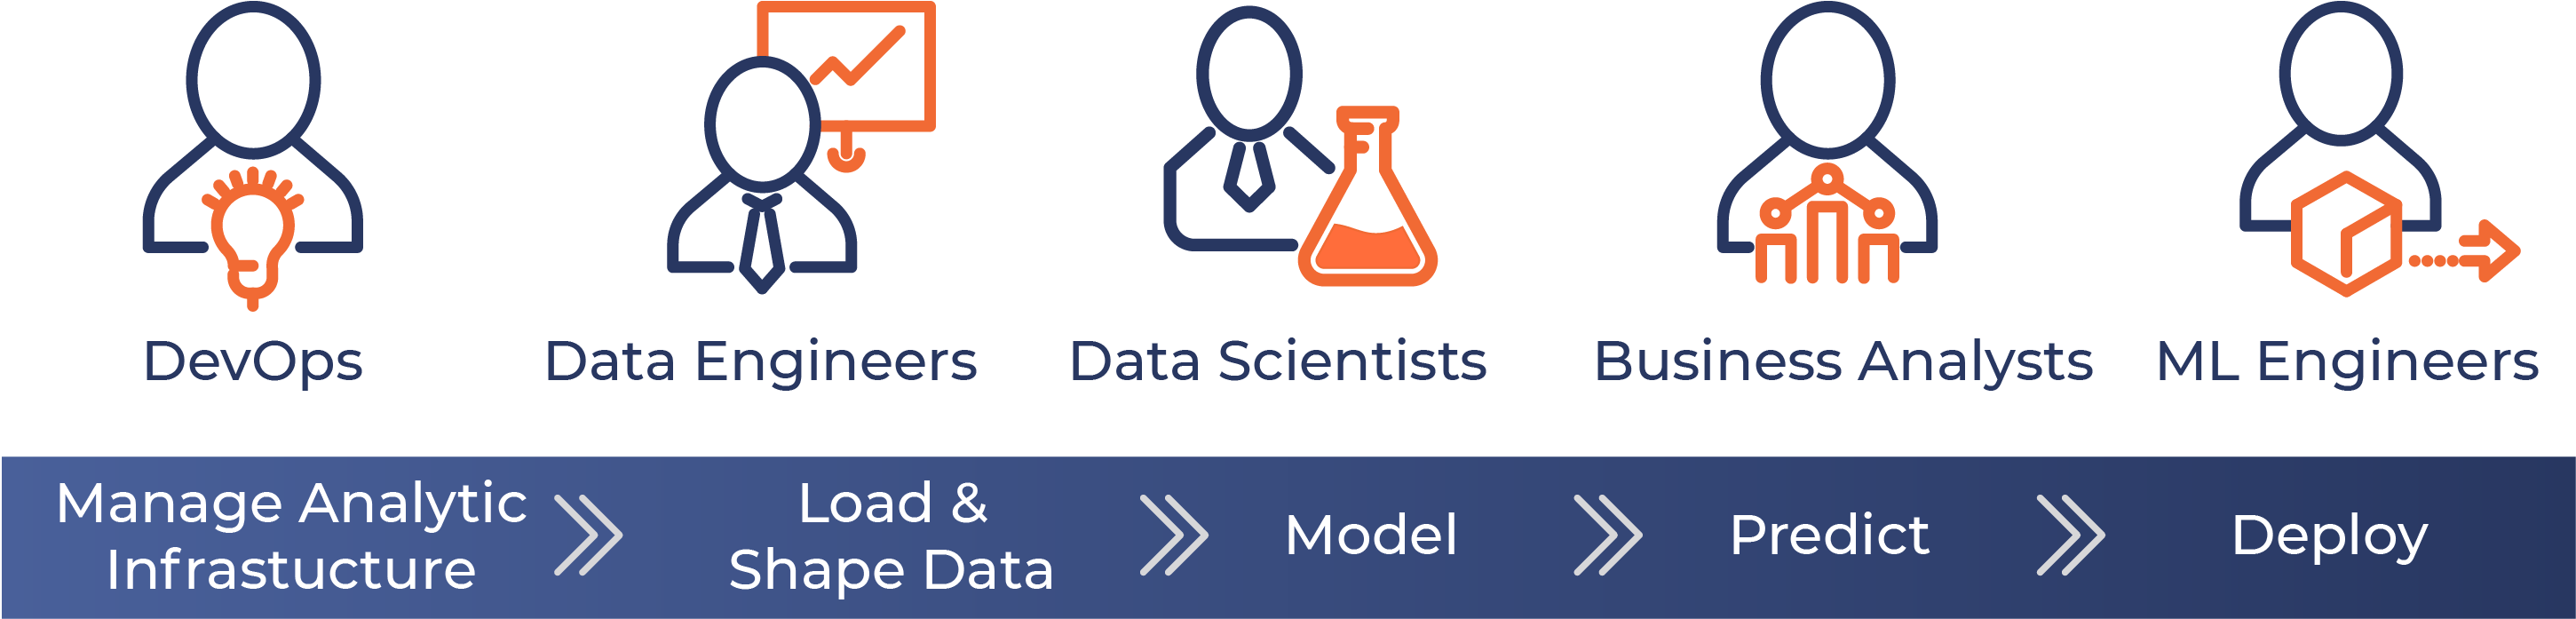 UBIX MAKES COMPLEXITY SIMPLE BY MANAGING THE END-END DATA SCIENCE AND AI LIFECYCLE